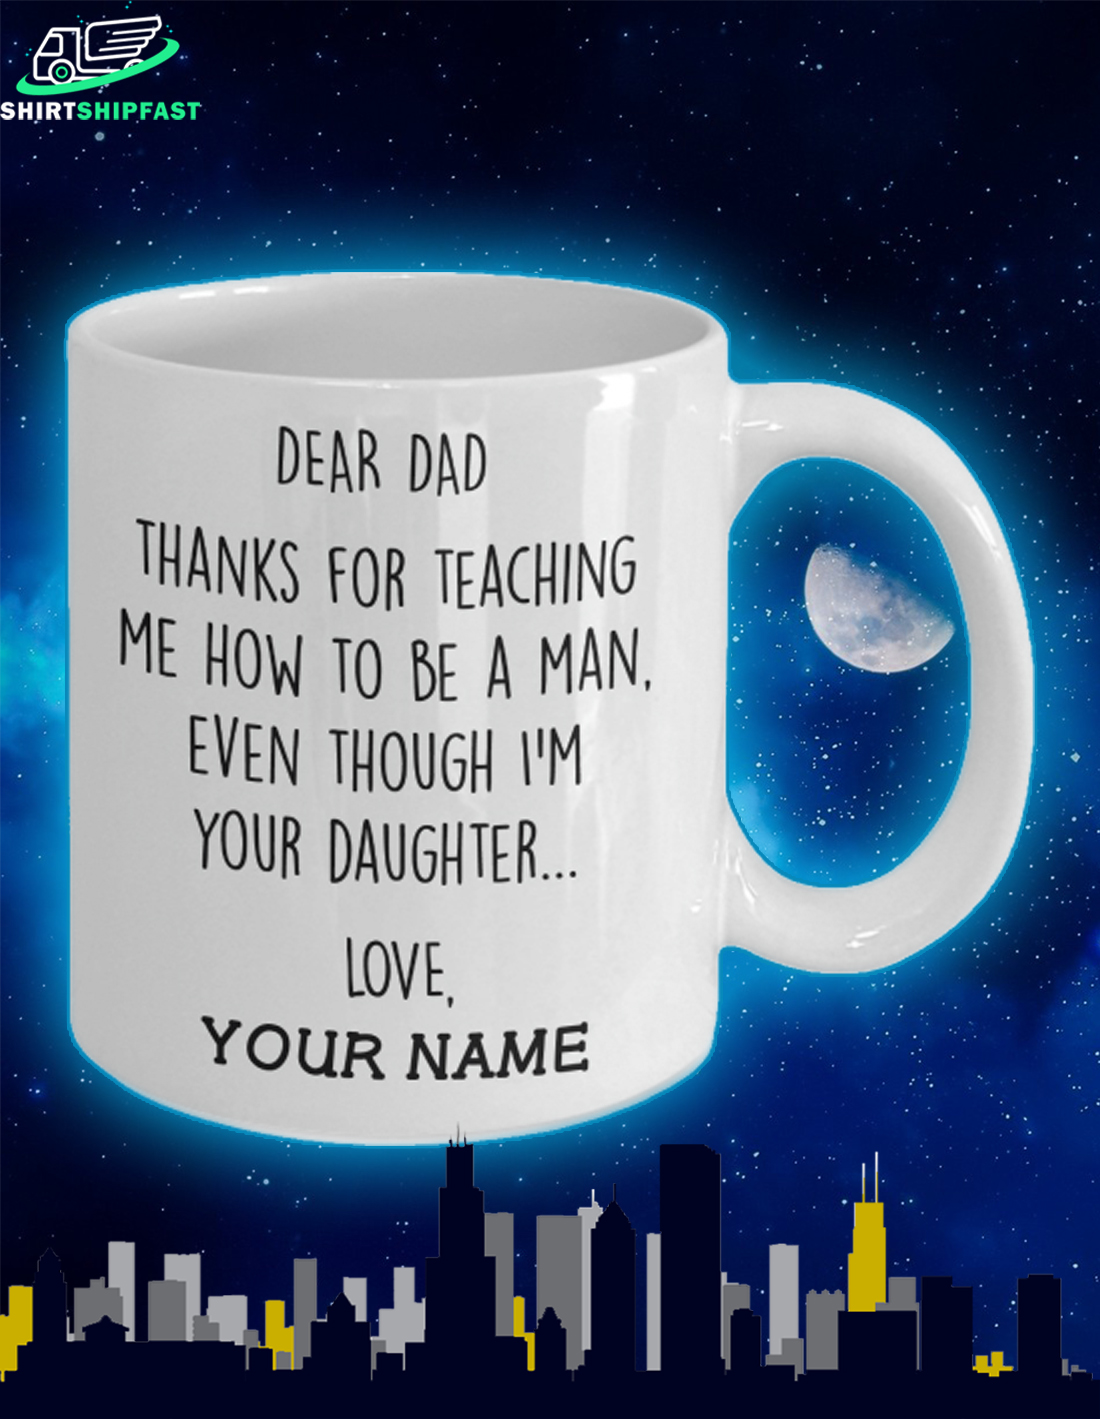 Dear dad Thanks for teaching me how to be a man even though I'm your daughter custom name mug - Picture 2